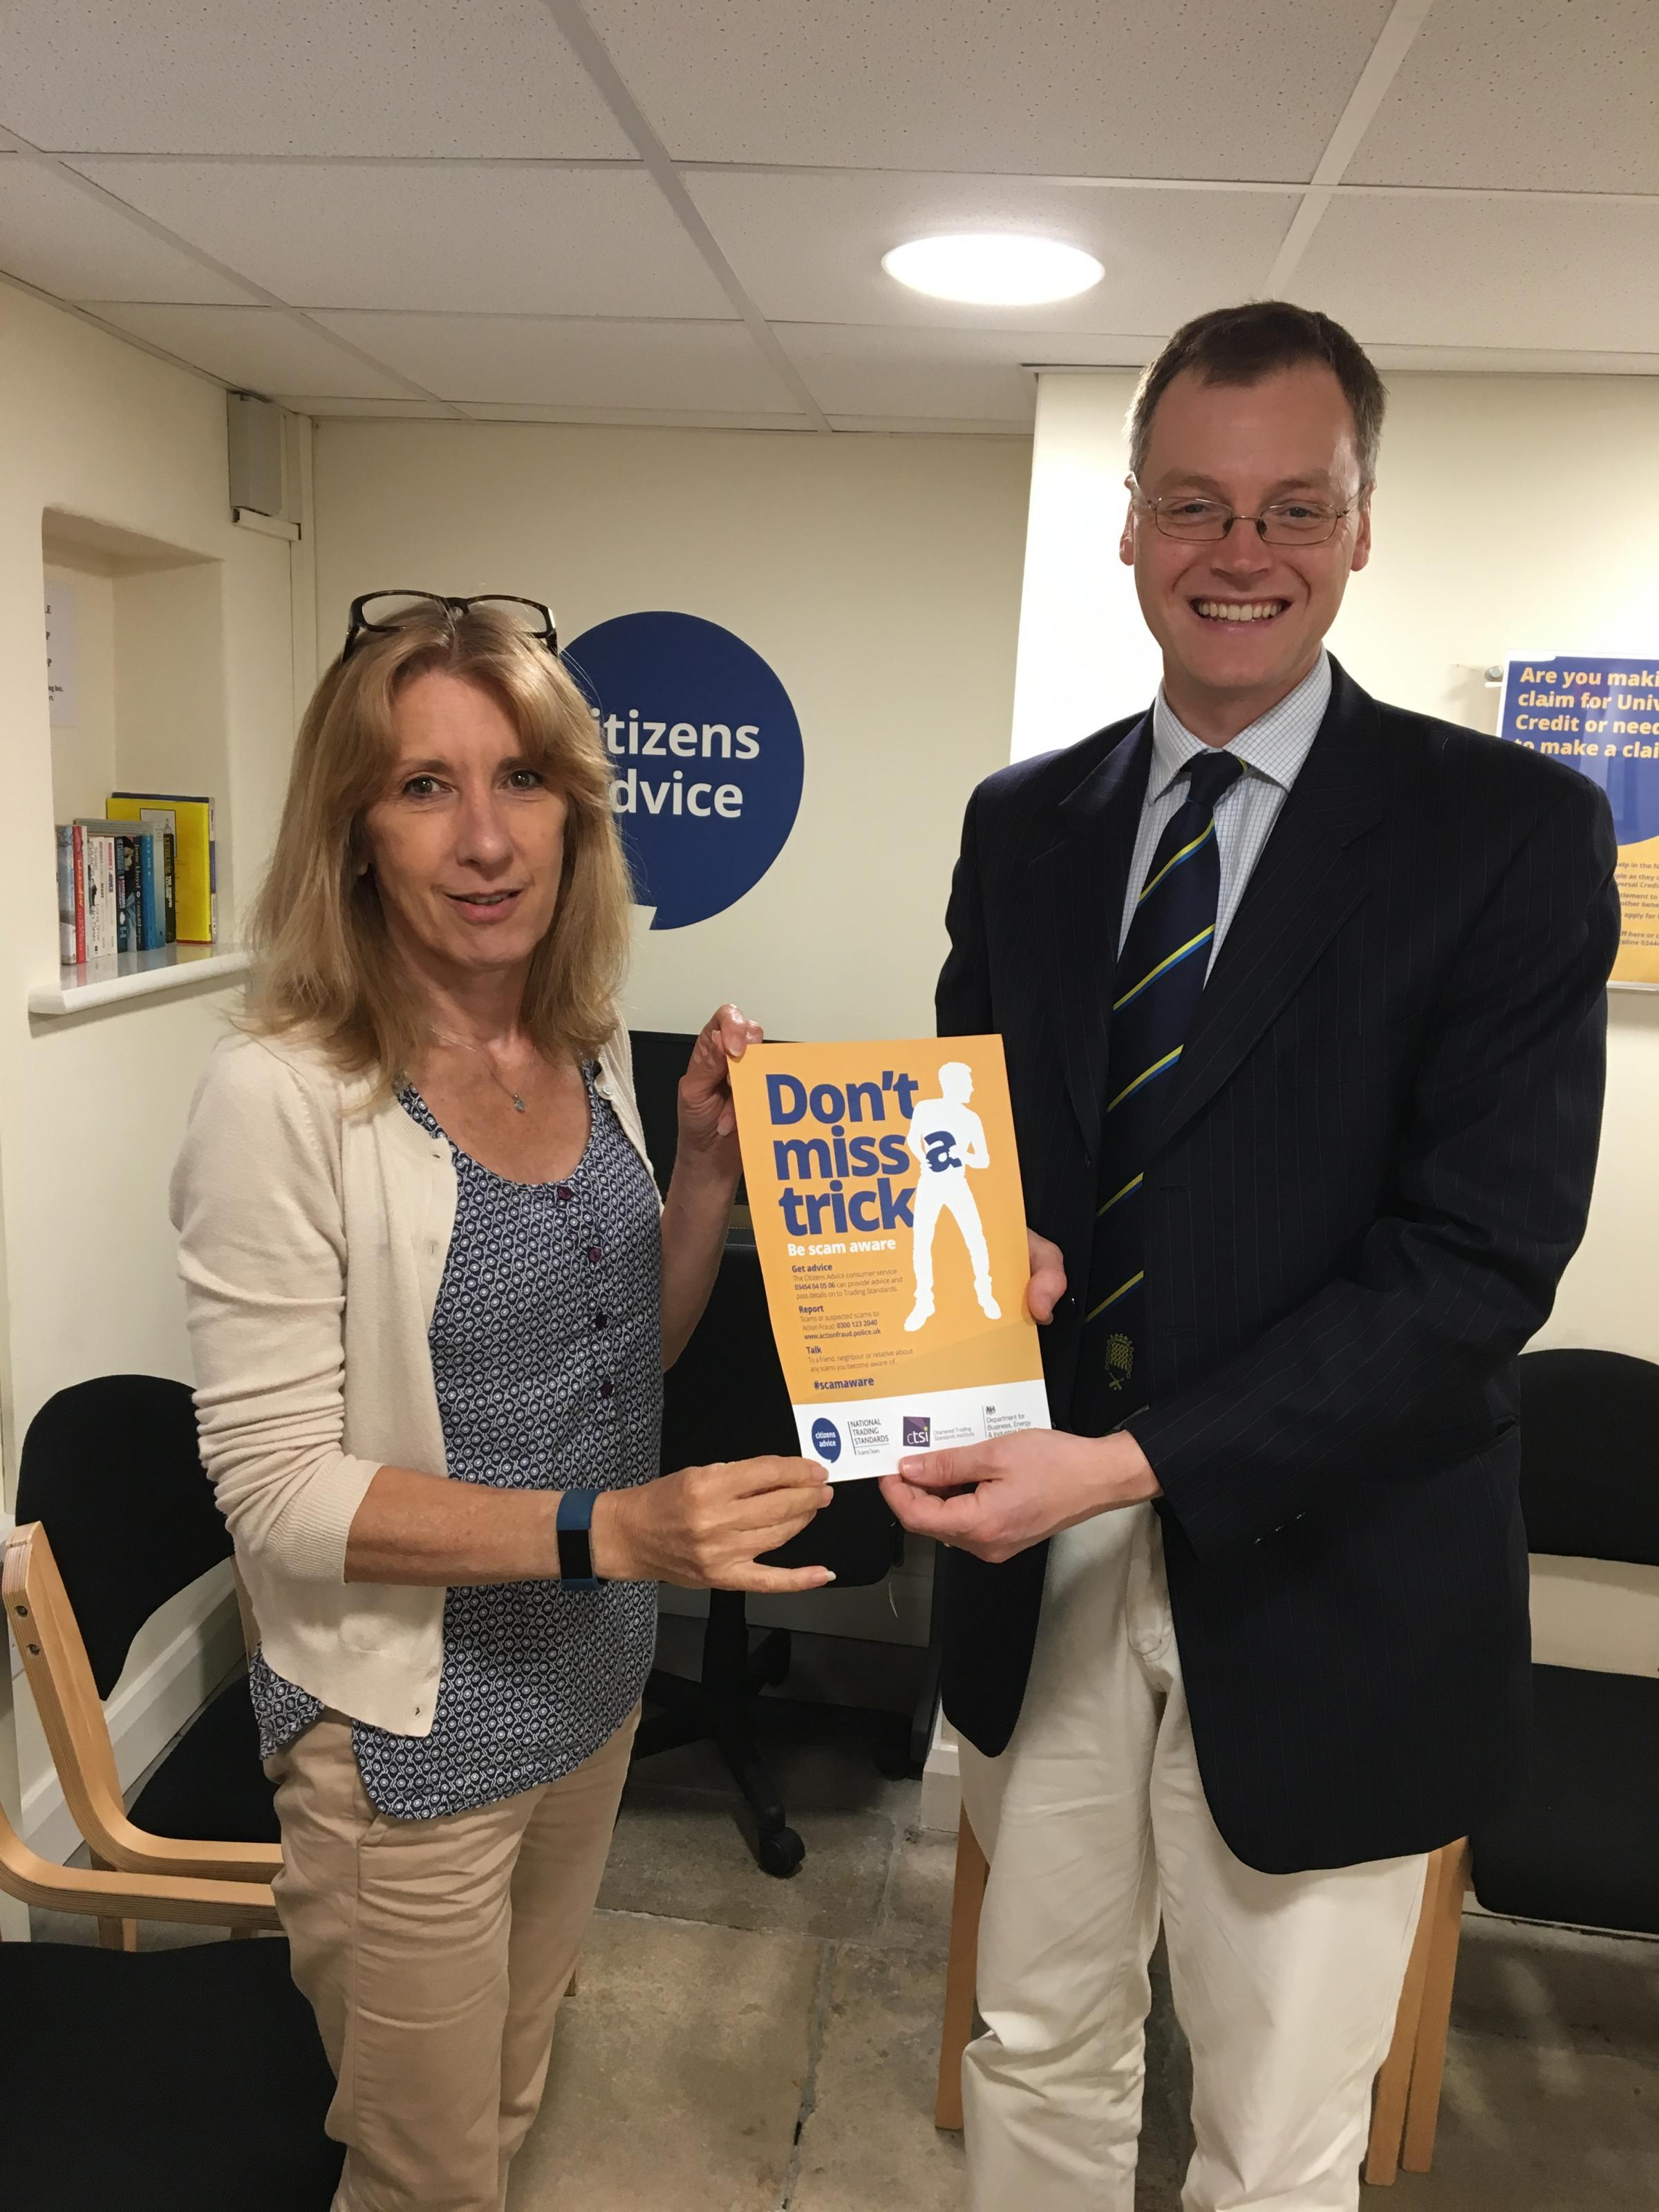 Michael Tomlinson MP talks to Citizens Advice during Scams Awareness